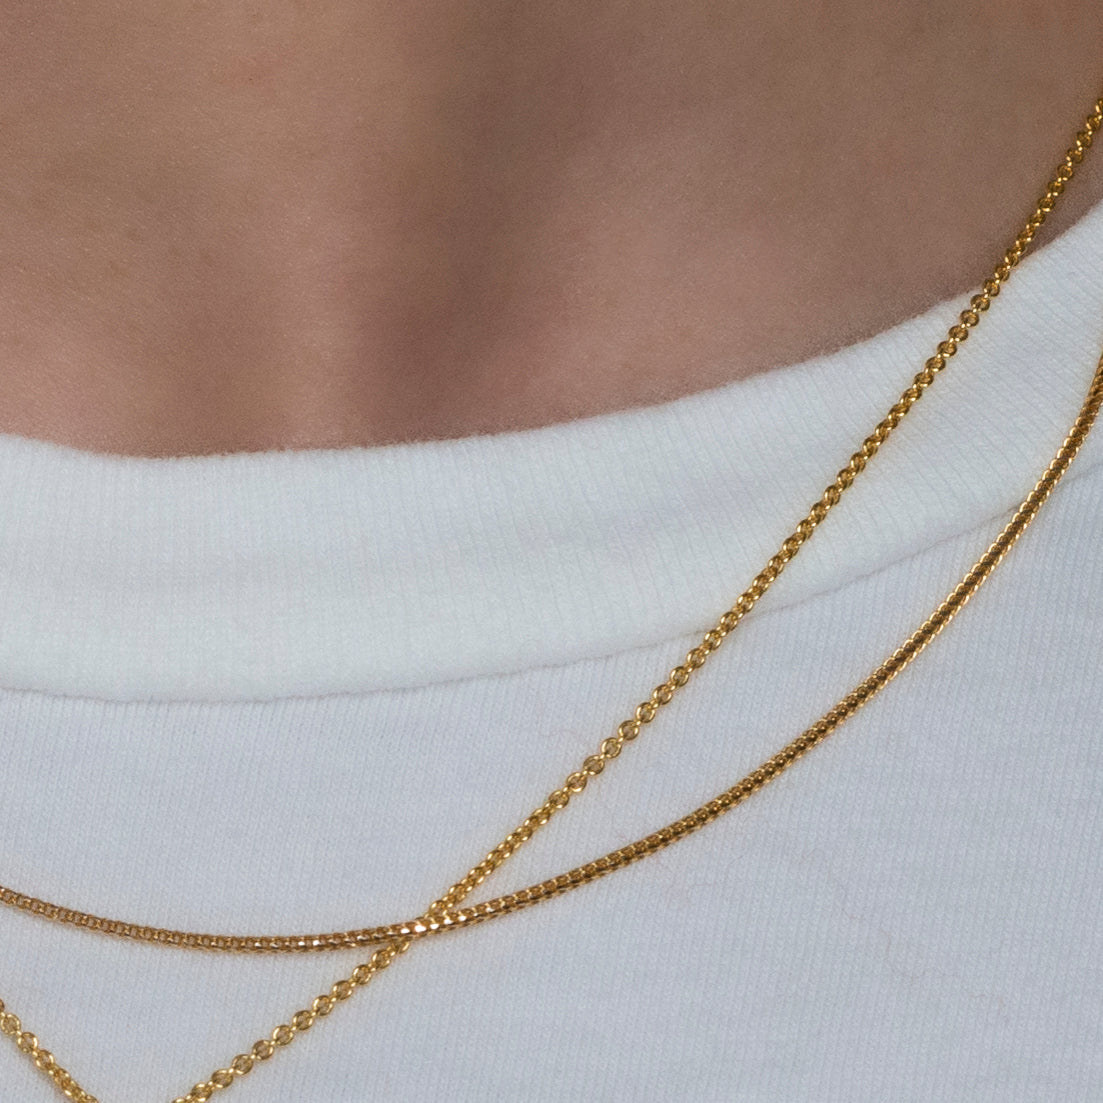 Franco Chain in 18k Yellow Gold